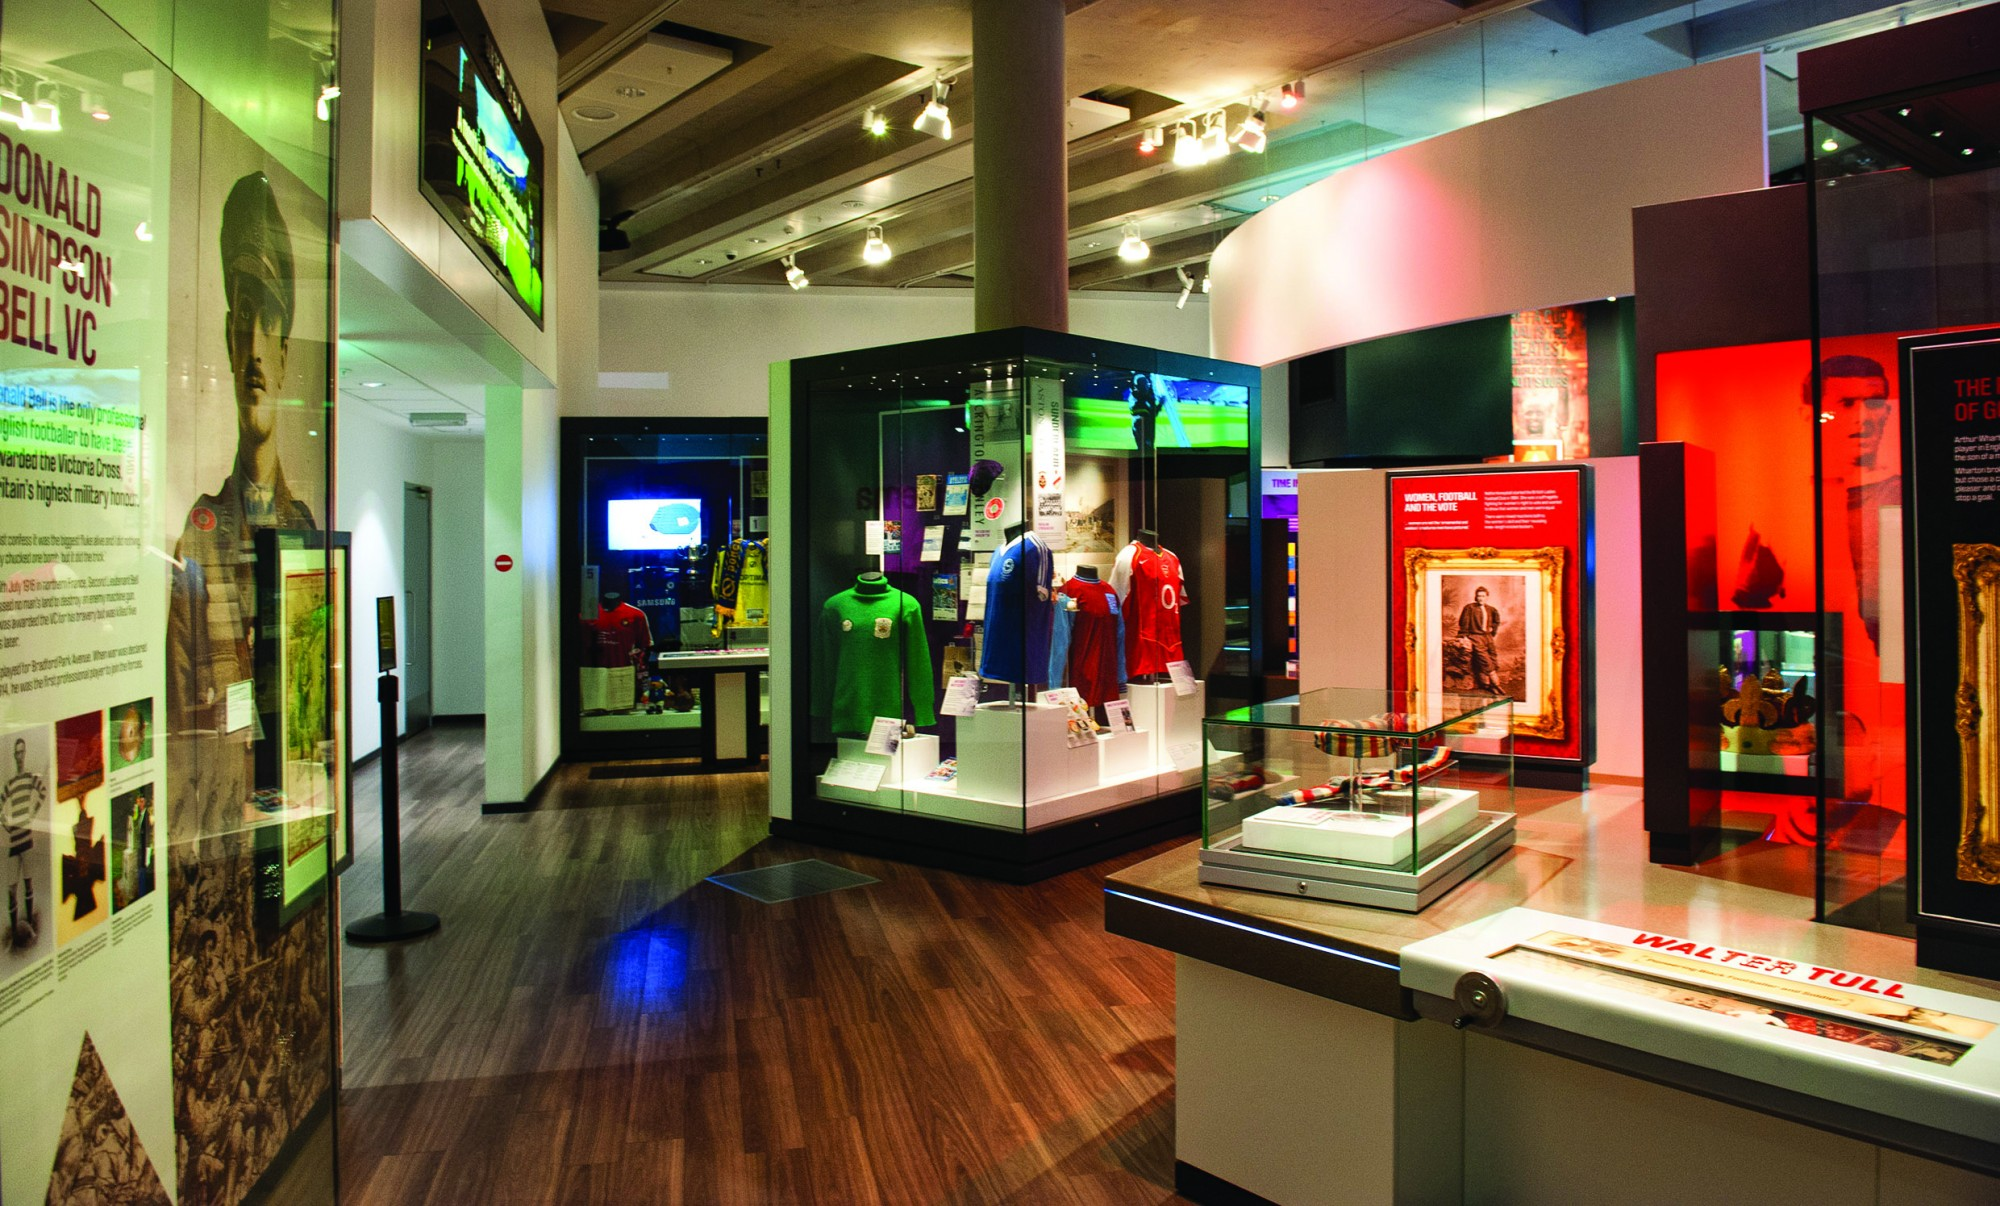 The National Football Museum,Top free things to do in the UK